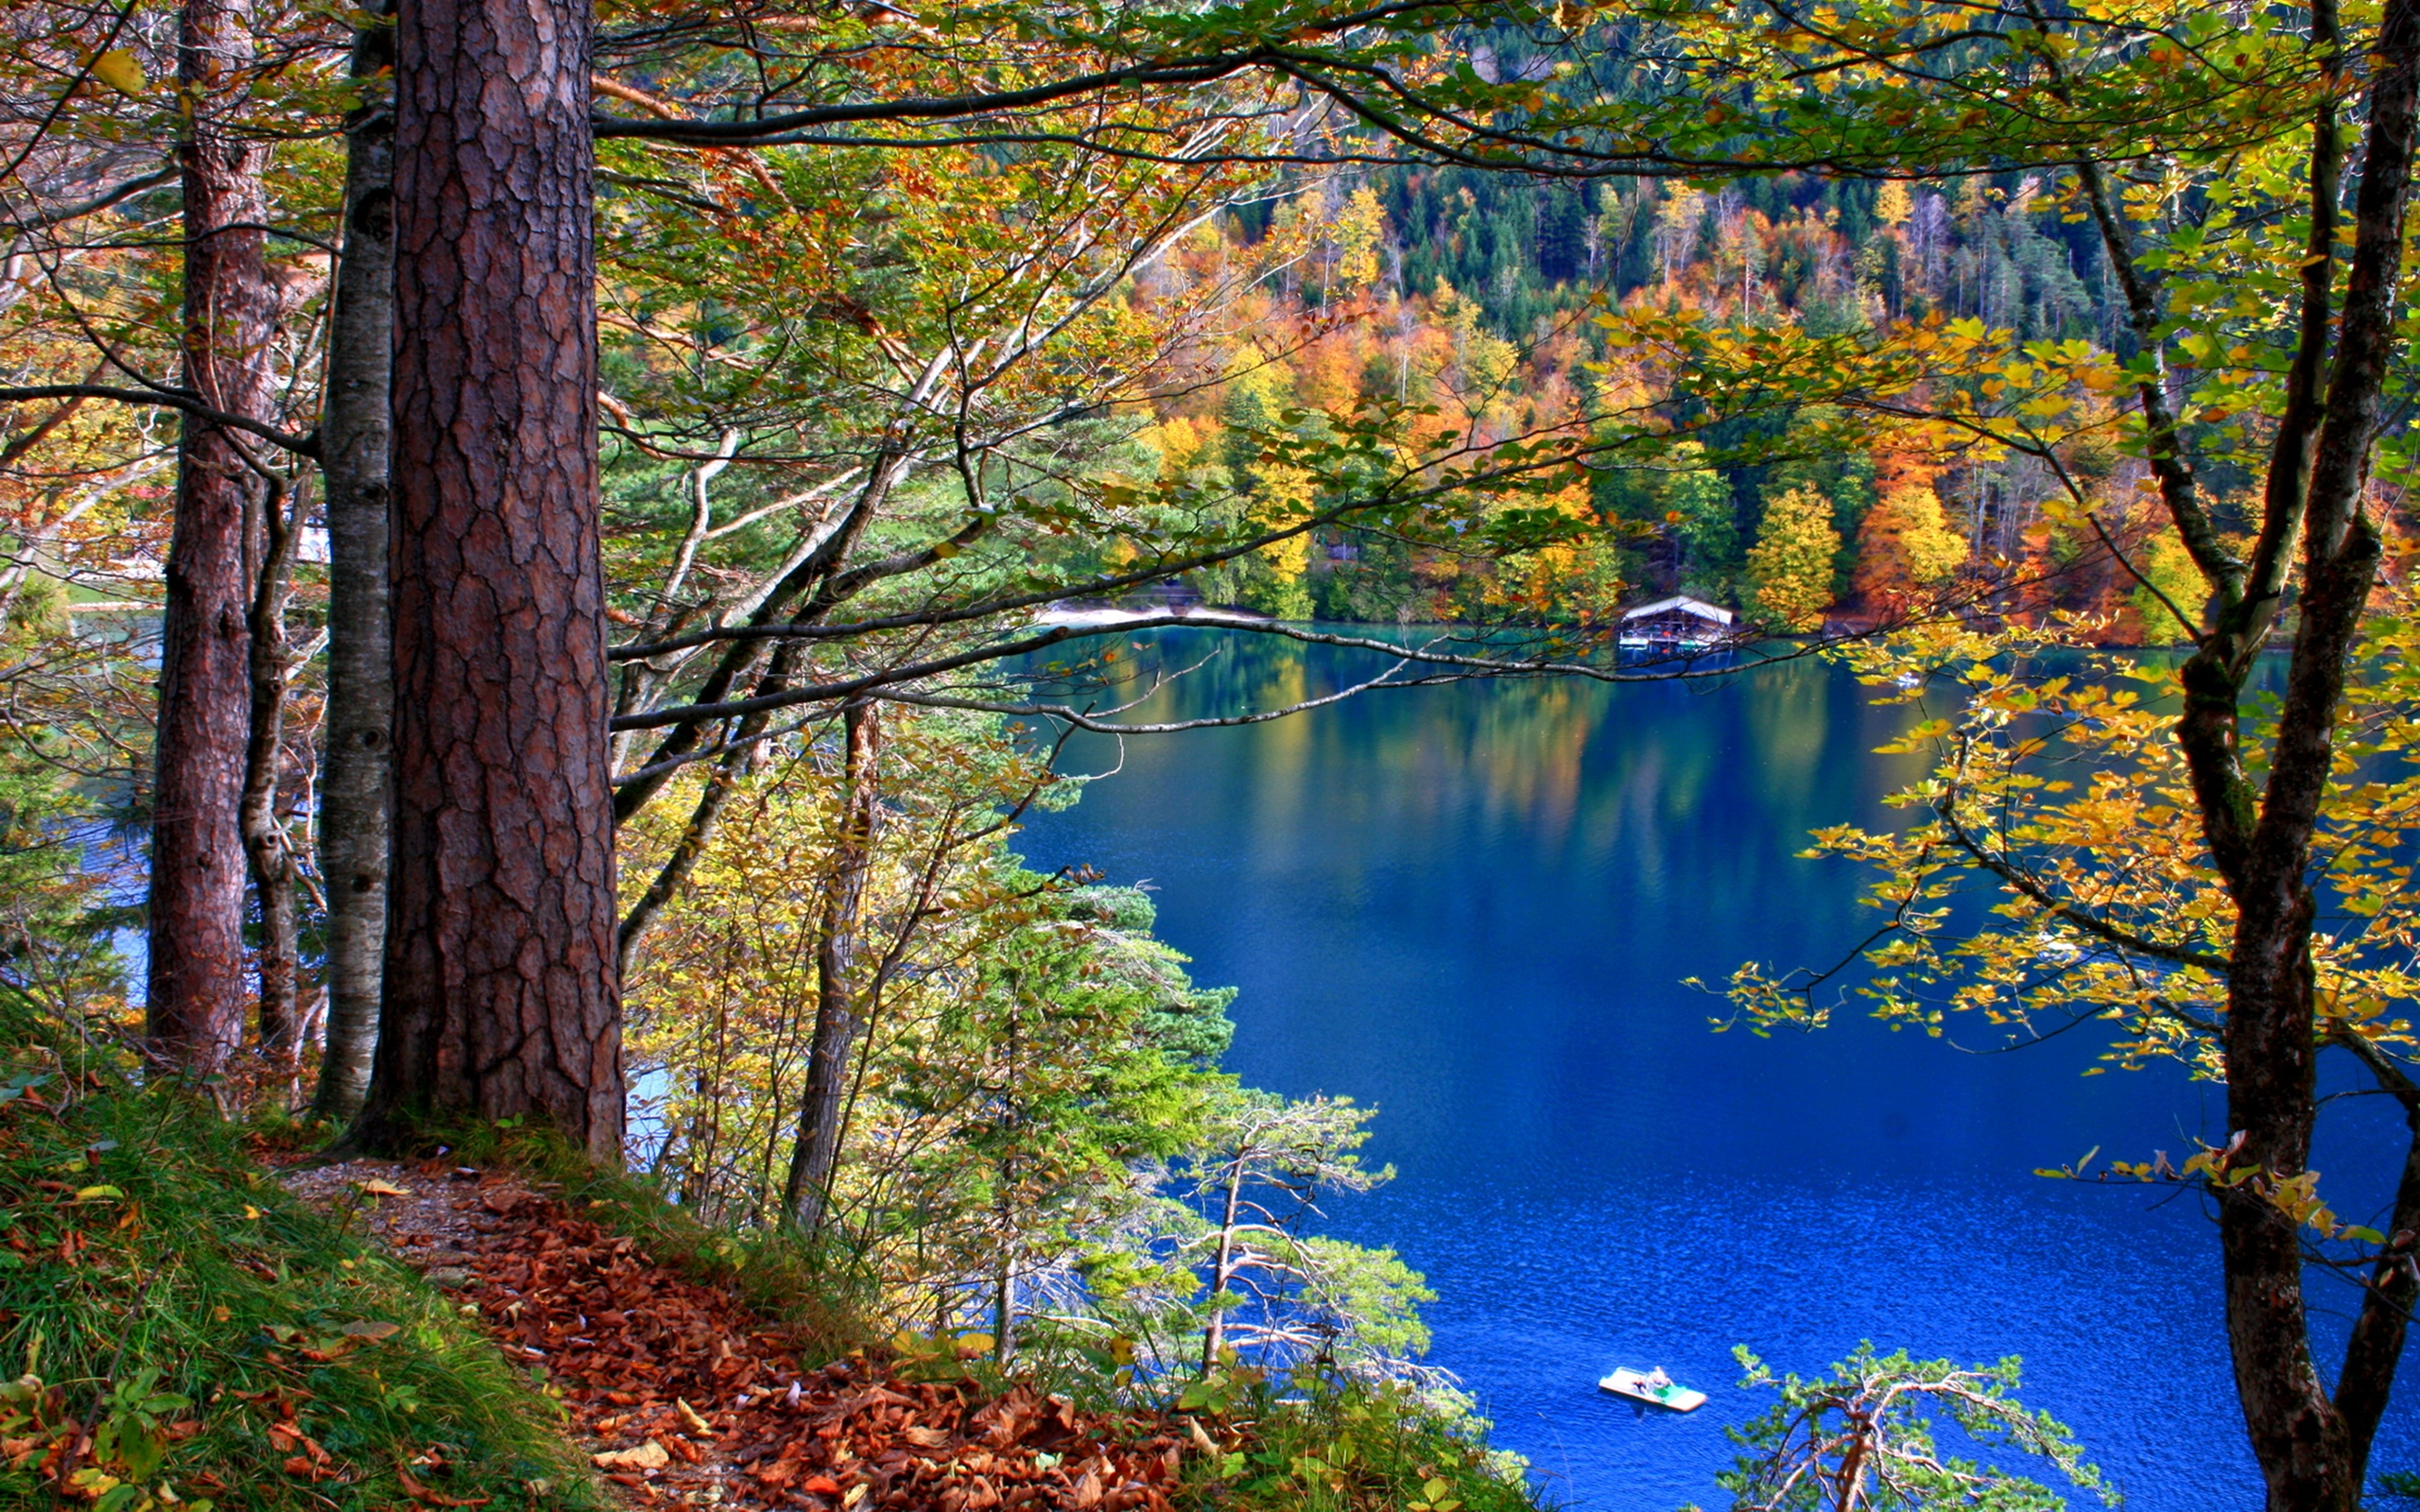 Fall Foliage Wallpaper 1920x1080 Nature Lakes Trees Forest Leaves Water Reflection Autumn